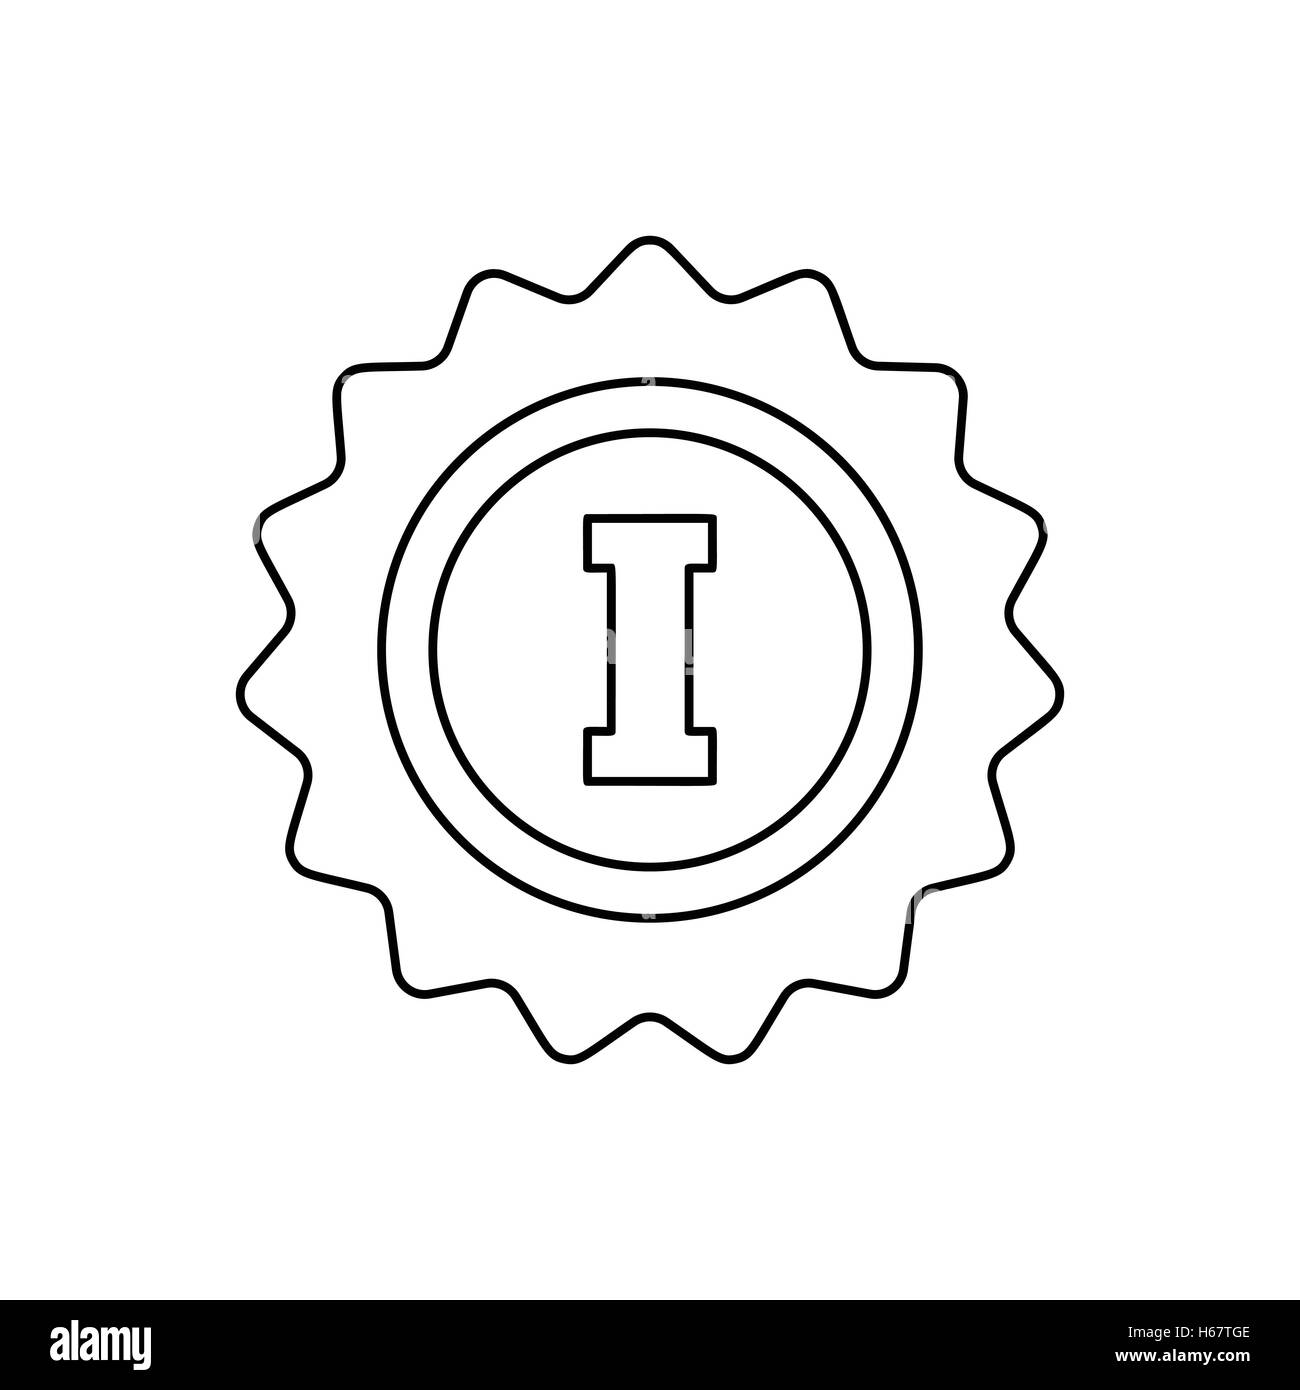 1st place rosette line icon - Stock Image